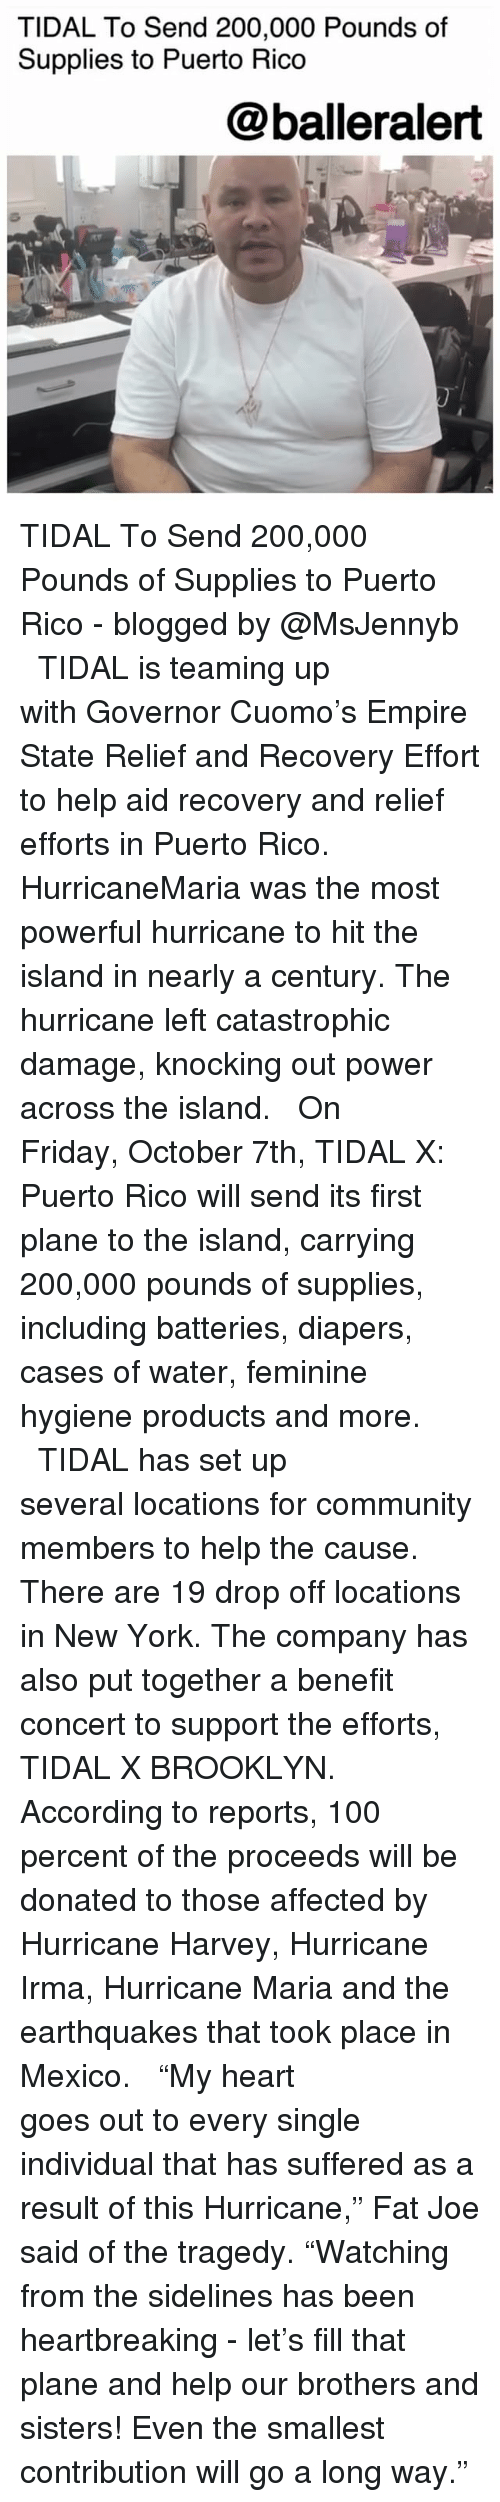 "sidelines: TIDAL To Send 200,000 Pounds of  Supplies to Puerto Rico  @balleralert TIDAL To Send 200,000 Pounds of Supplies to Puerto Rico - blogged by @MsJennyb ⠀⠀⠀⠀⠀⠀⠀ ⠀⠀⠀⠀⠀⠀⠀ TIDAL is teaming up with Governor Cuomo's Empire State Relief and Recovery Effort to help aid recovery and relief efforts in Puerto Rico. ⠀⠀⠀⠀⠀⠀⠀ ⠀⠀⠀⠀⠀⠀⠀ HurricaneMaria was the most powerful hurricane to hit the island in nearly a century. The hurricane left catastrophic damage, knocking out power across the island. ⠀⠀⠀⠀⠀⠀⠀ ⠀⠀⠀⠀⠀⠀⠀ On Friday, October 7th, TIDAL X: Puerto Rico will send its first plane to the island, carrying 200,000 pounds of supplies, including batteries, diapers, cases of water, feminine hygiene products and more. ⠀⠀⠀⠀⠀⠀⠀ ⠀⠀⠀⠀⠀⠀⠀ TIDAL has set up several locations for community members to help the cause. There are 19 drop off locations in New York. The company has also put together a benefit concert to support the efforts, TIDAL X BROOKLYN. According to reports, 100 percent of the proceeds will be donated to those affected by Hurricane Harvey, Hurricane Irma, Hurricane Maria and the earthquakes that took place in Mexico. ⠀⠀⠀⠀⠀⠀⠀ ⠀⠀⠀⠀⠀⠀⠀ ""My heart goes out to every single individual that has suffered as a result of this Hurricane,"" Fat Joe said of the tragedy. ""Watching from the sidelines has been heartbreaking - let's fill that plane and help our brothers and sisters! Even the smallest contribution will go a long way."""